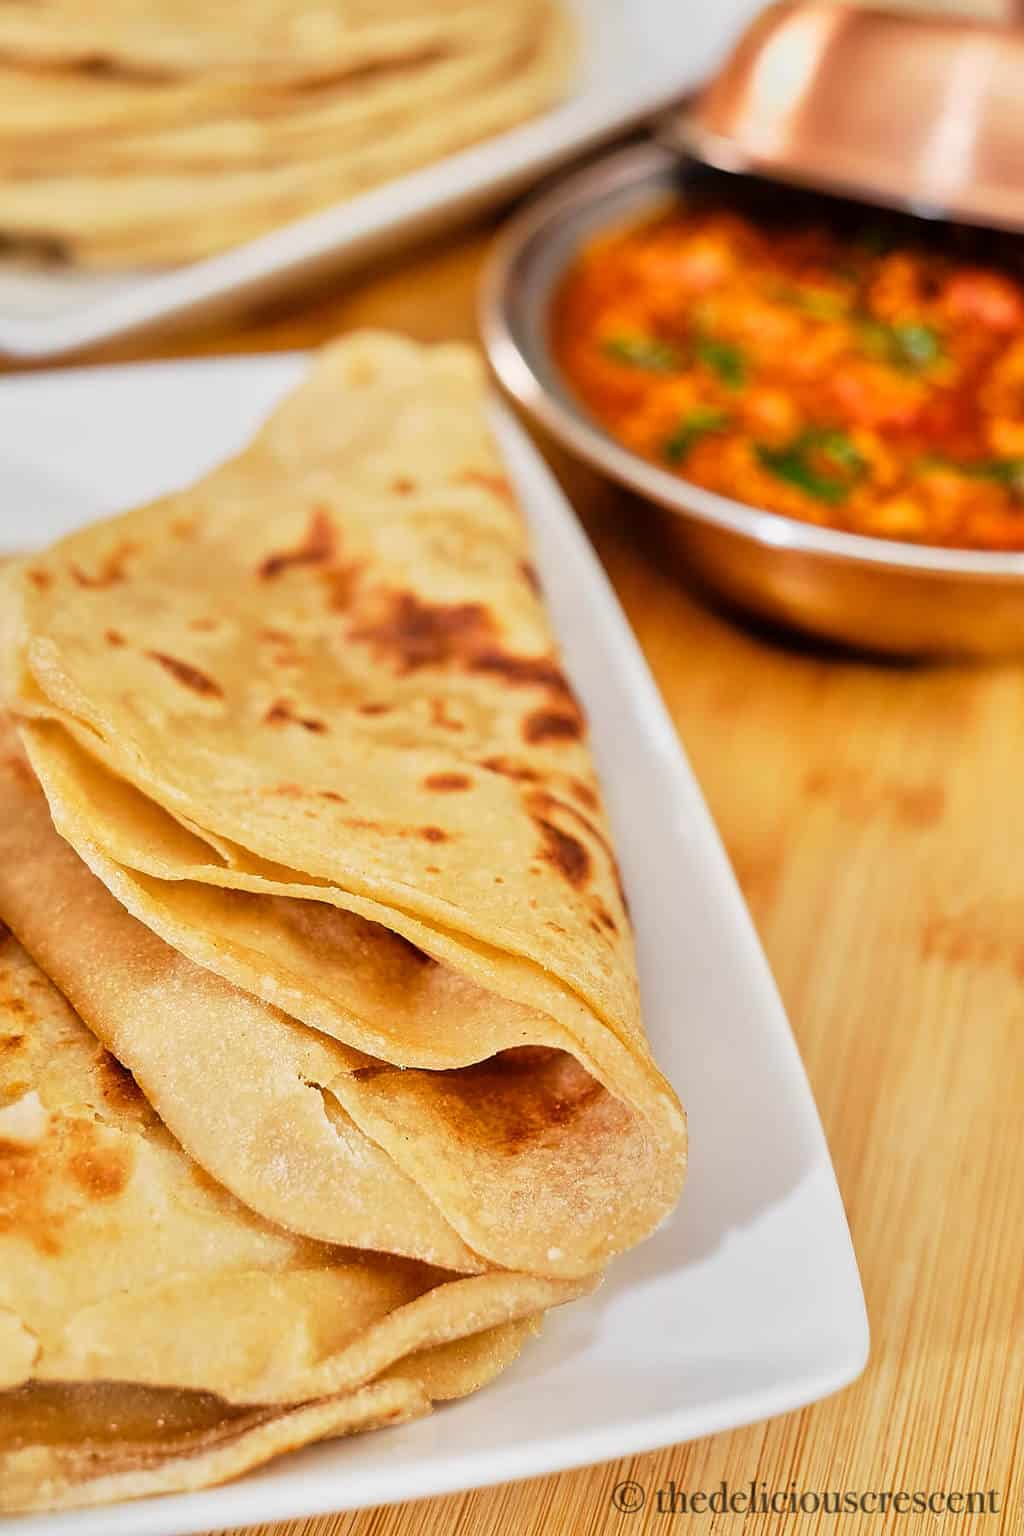 Folded paratha placed on a plate.